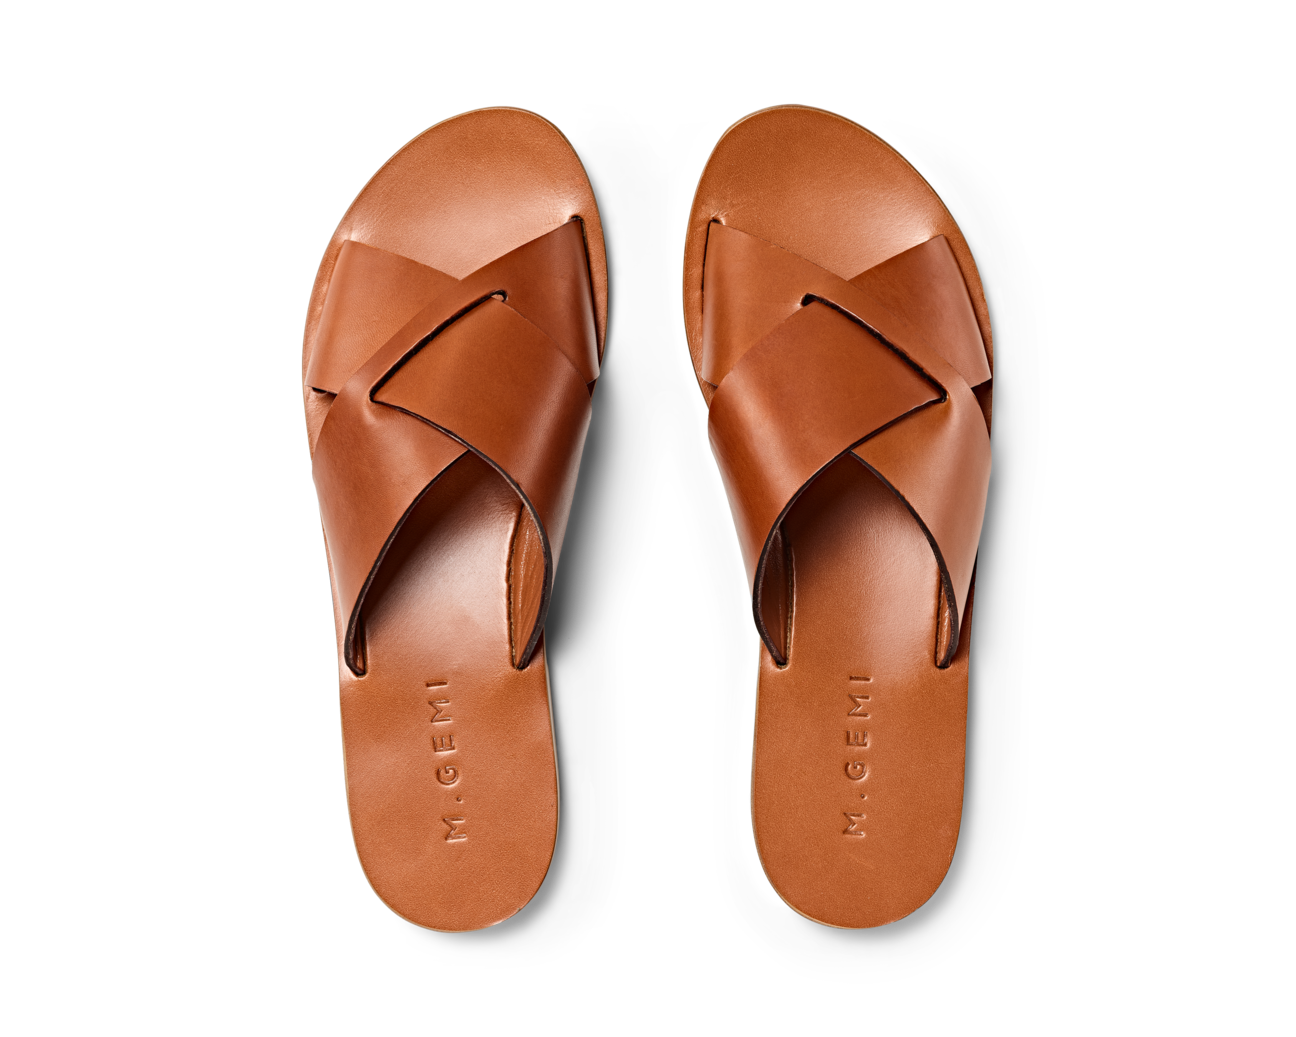 53493d6b86a The Siena in 2019 | Spring fever | Shoes, Sandals, Flat sandals outfit